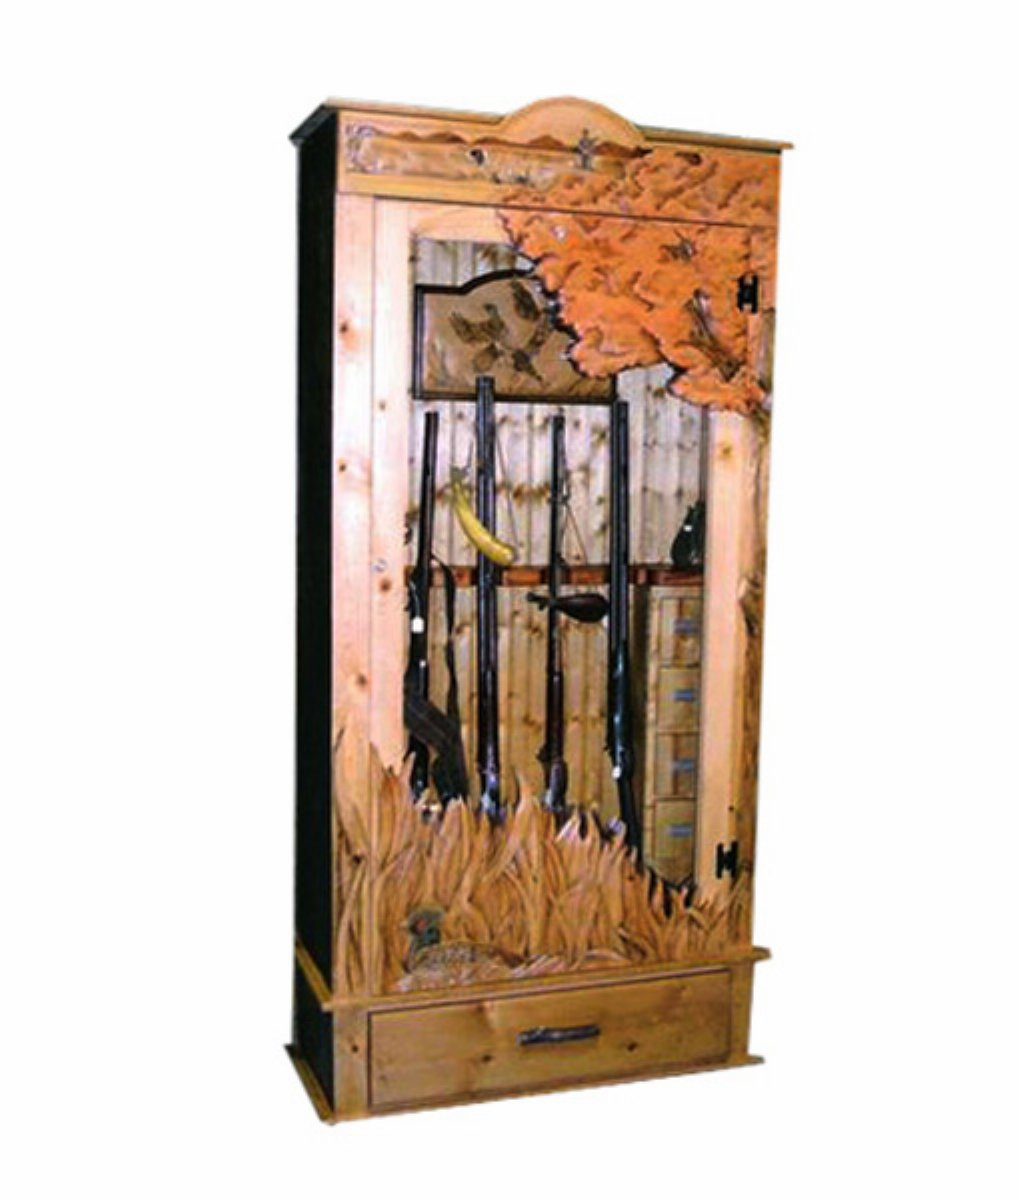 gun cabinet $ 4200 00 this custom carved gun cabinet is made to be